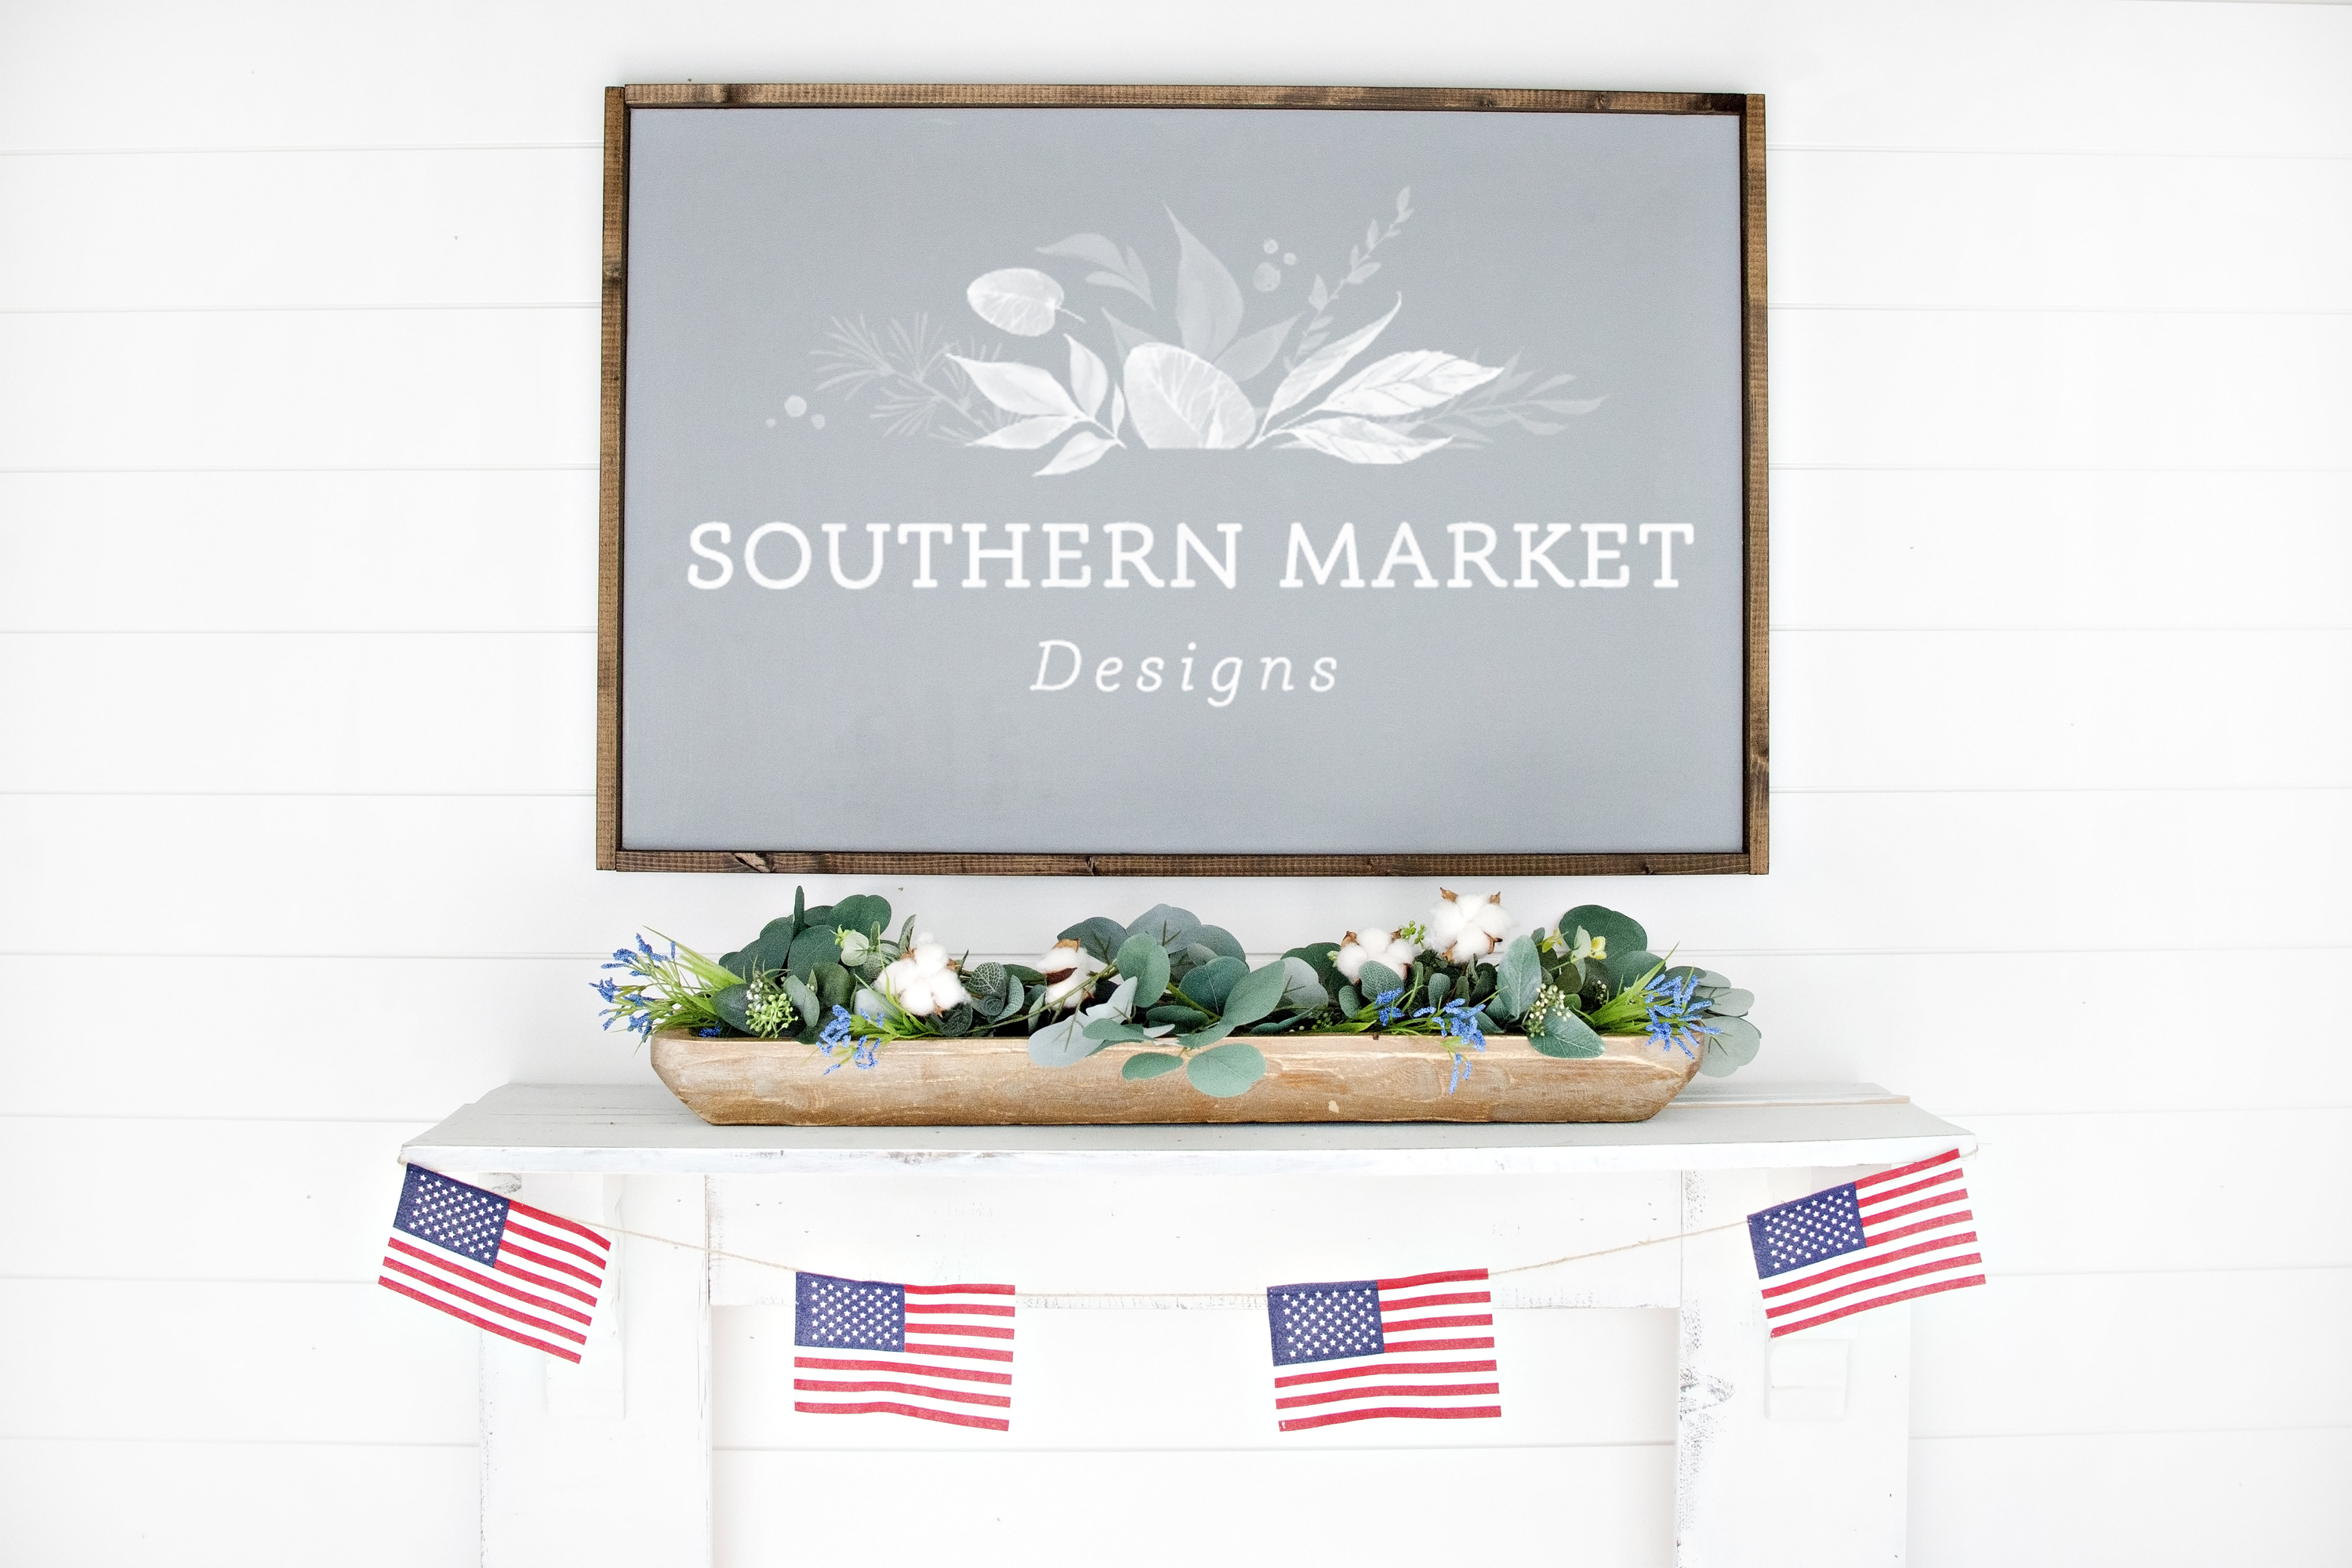 Patriotic Summer Wood 24x36 Sign Mock Up Stock Photo example image 1